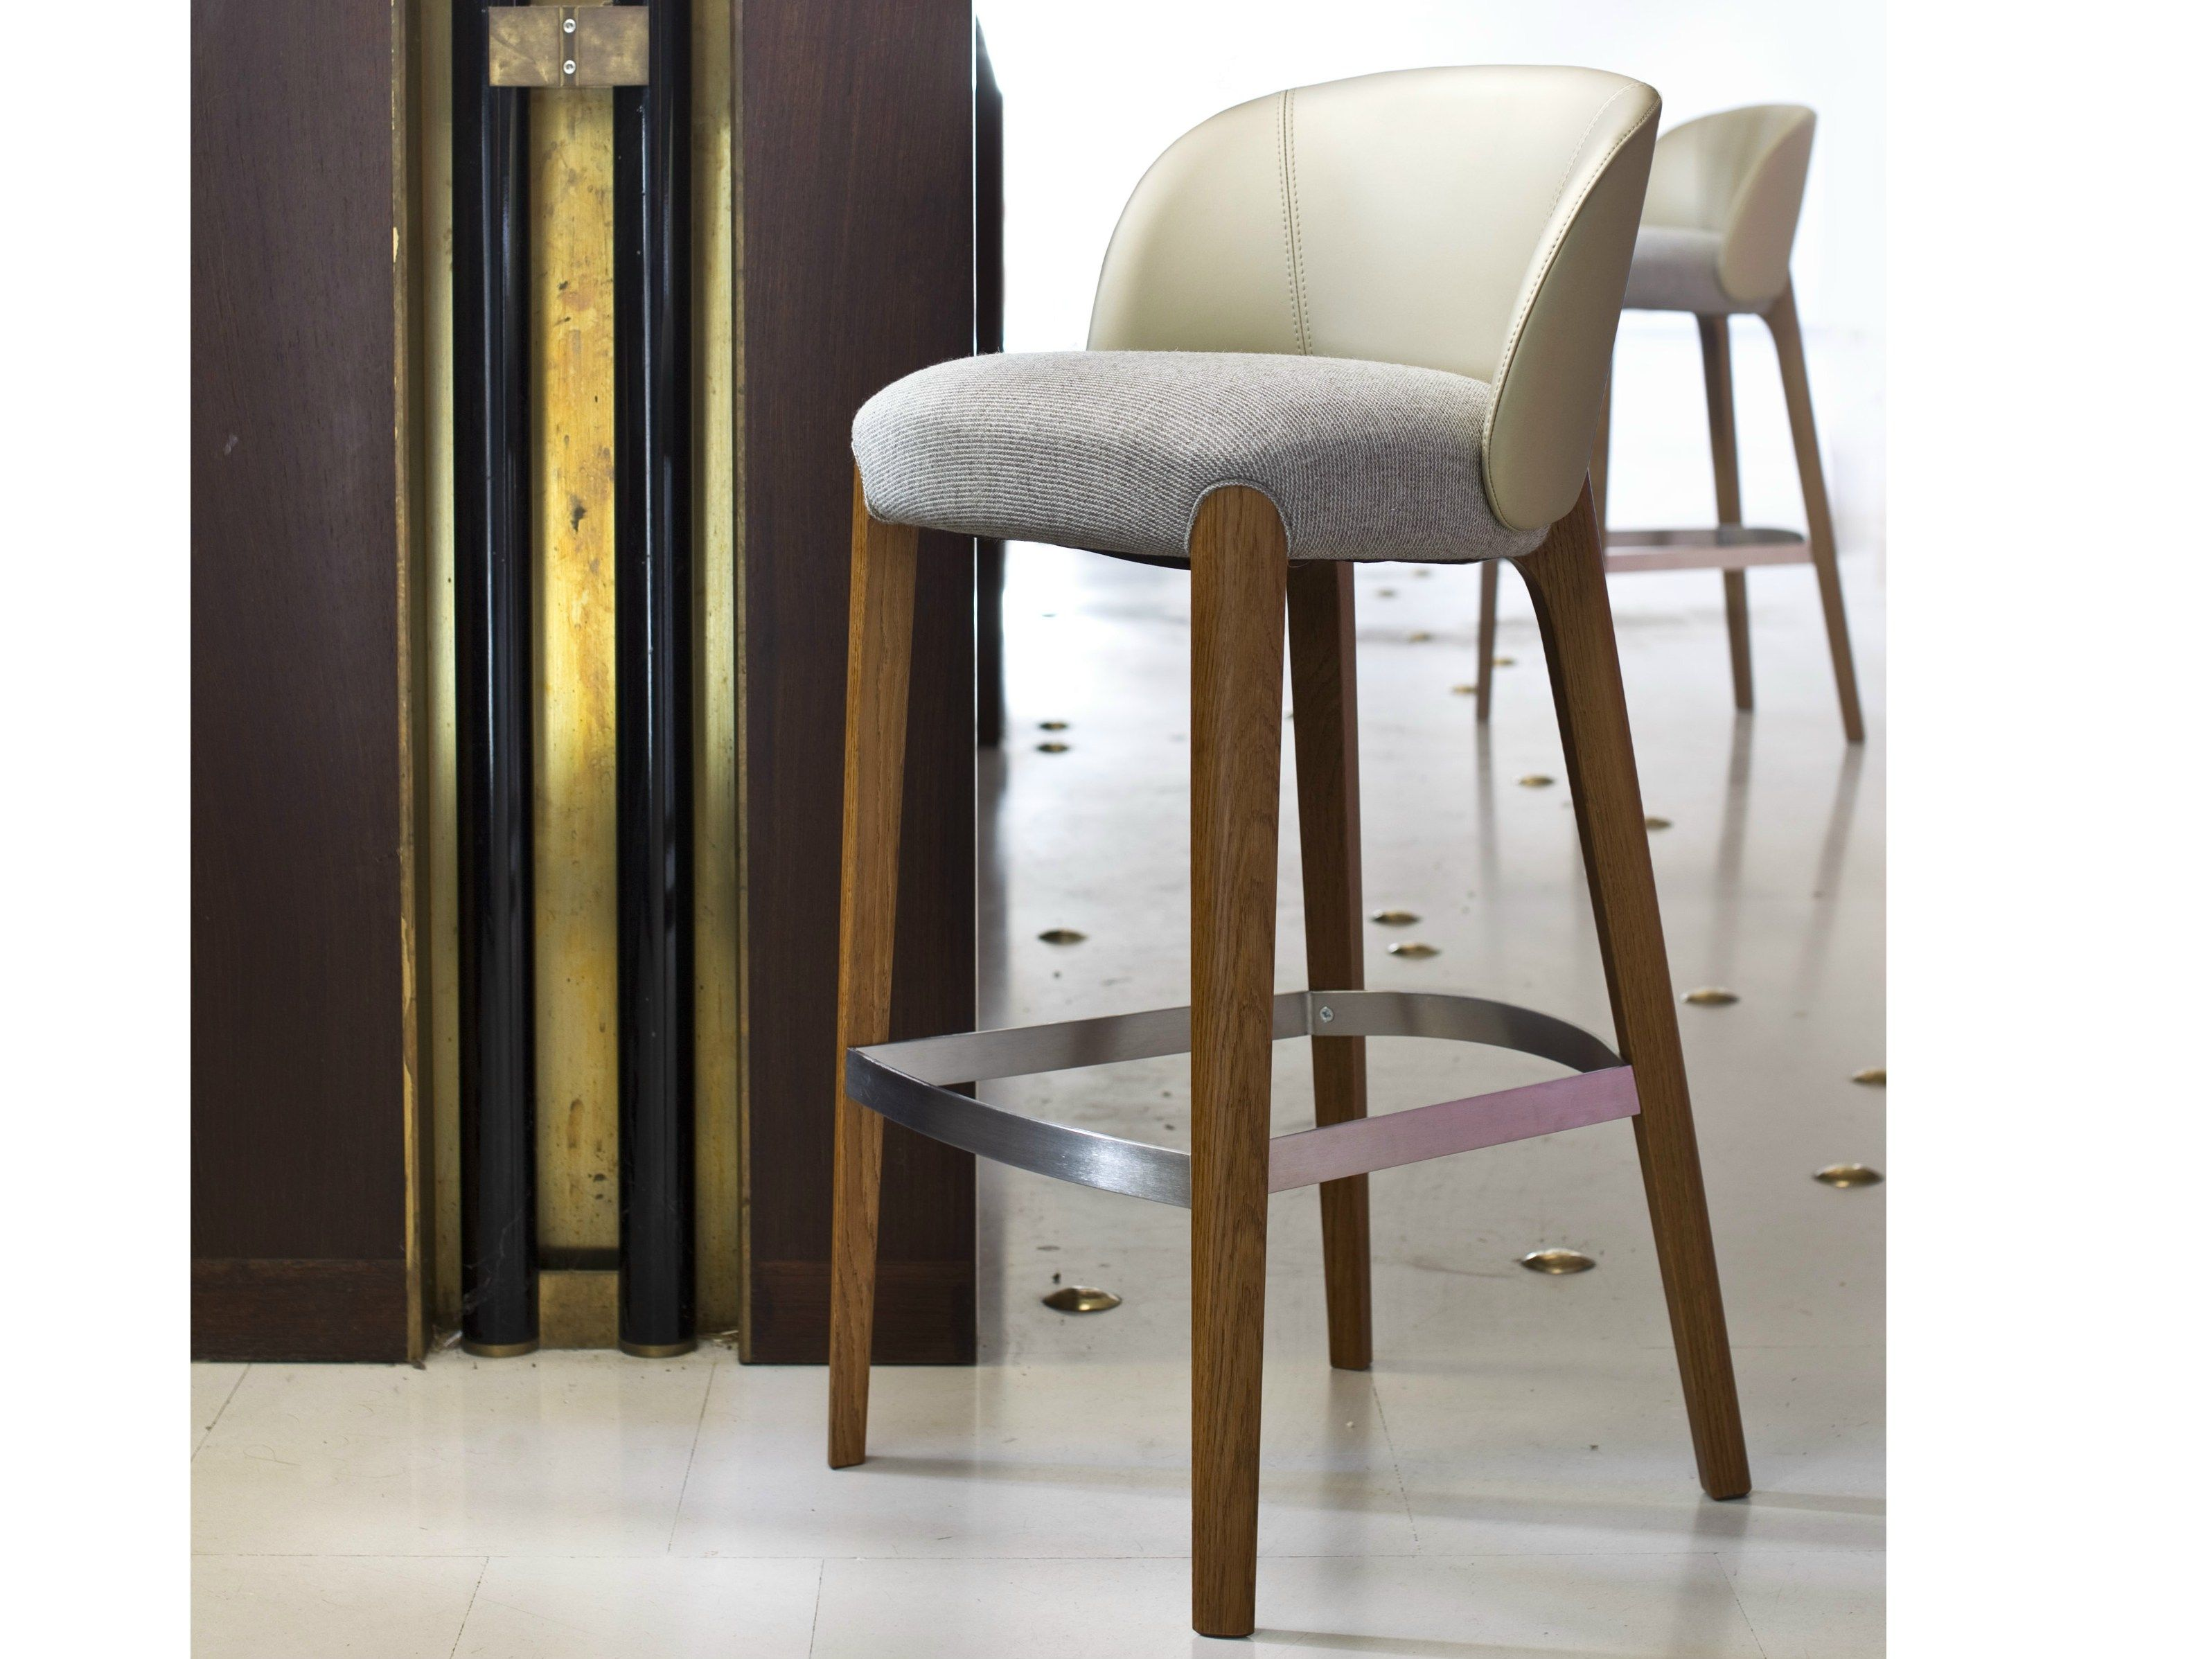 Upholstered Bar Stools So That Support All The Comfort When